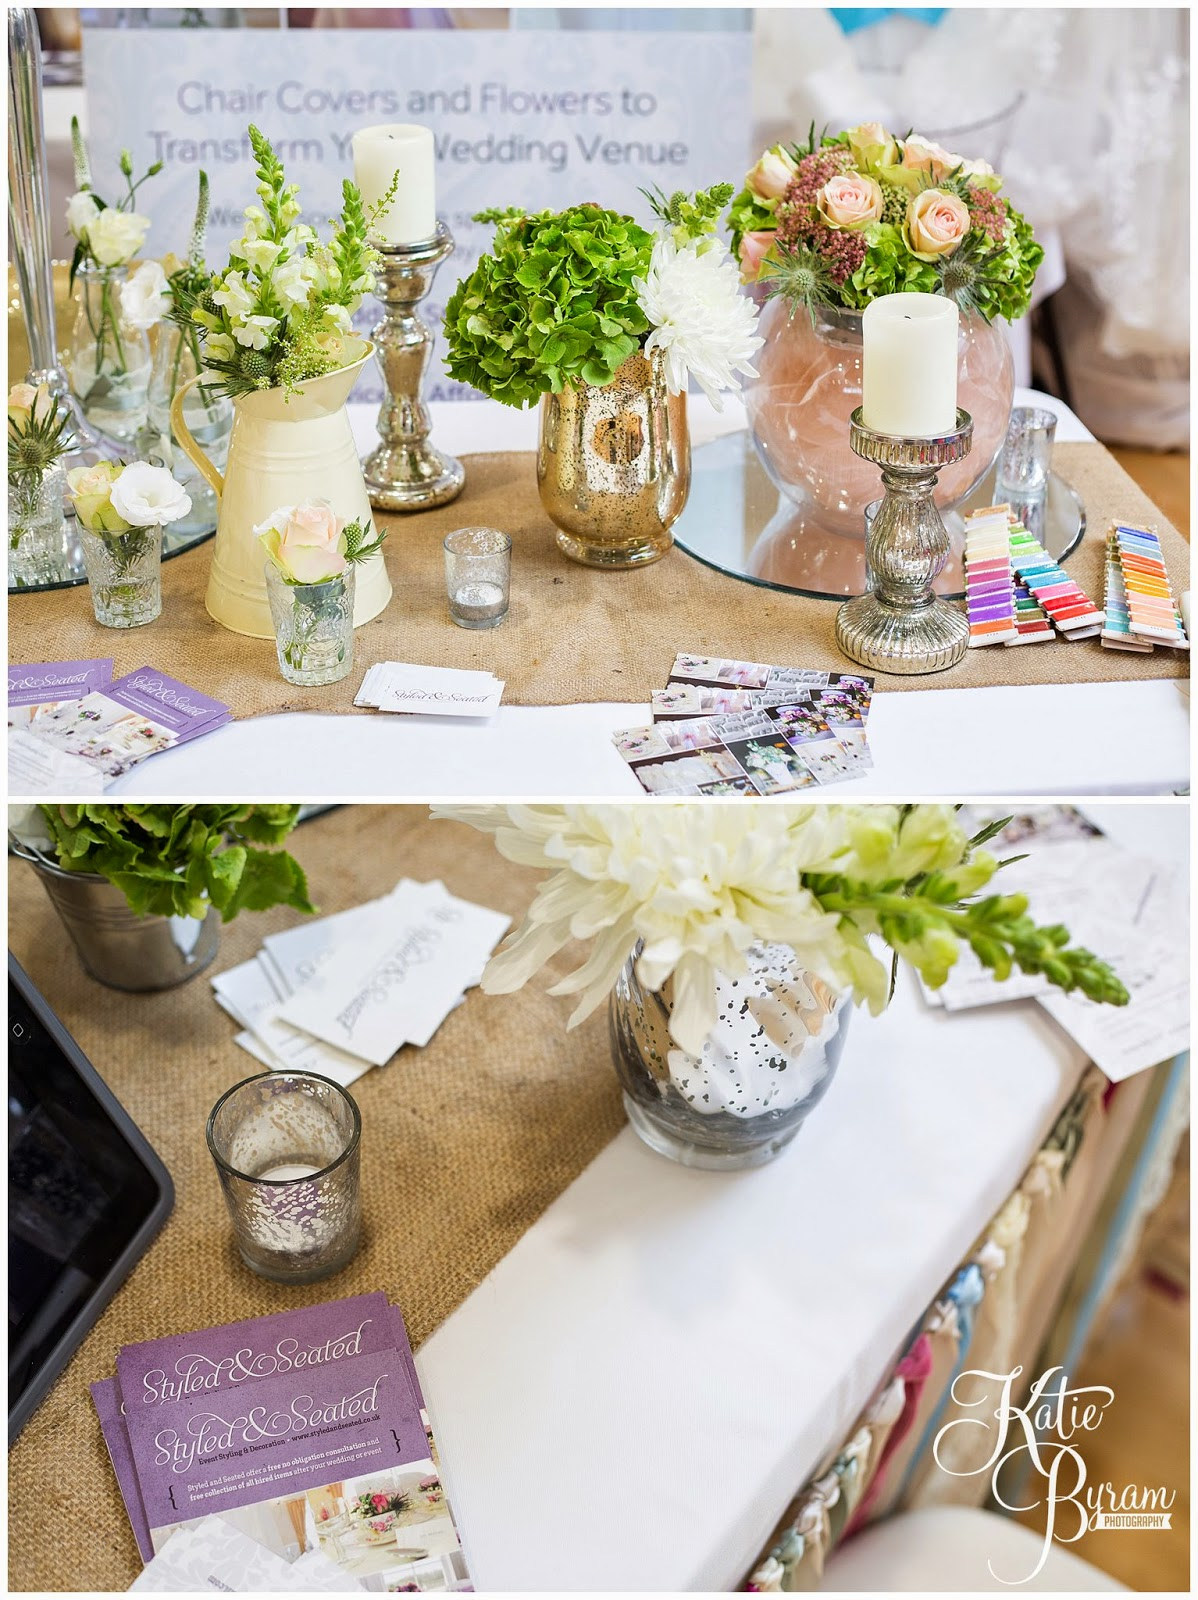 styled and seated, the biscuit factory, newcastle, wedding photography, wedding photos the biscuit factory, the biscuit rooms, wedding wonder show, belle bridal wedding fayre, katie byram photography,